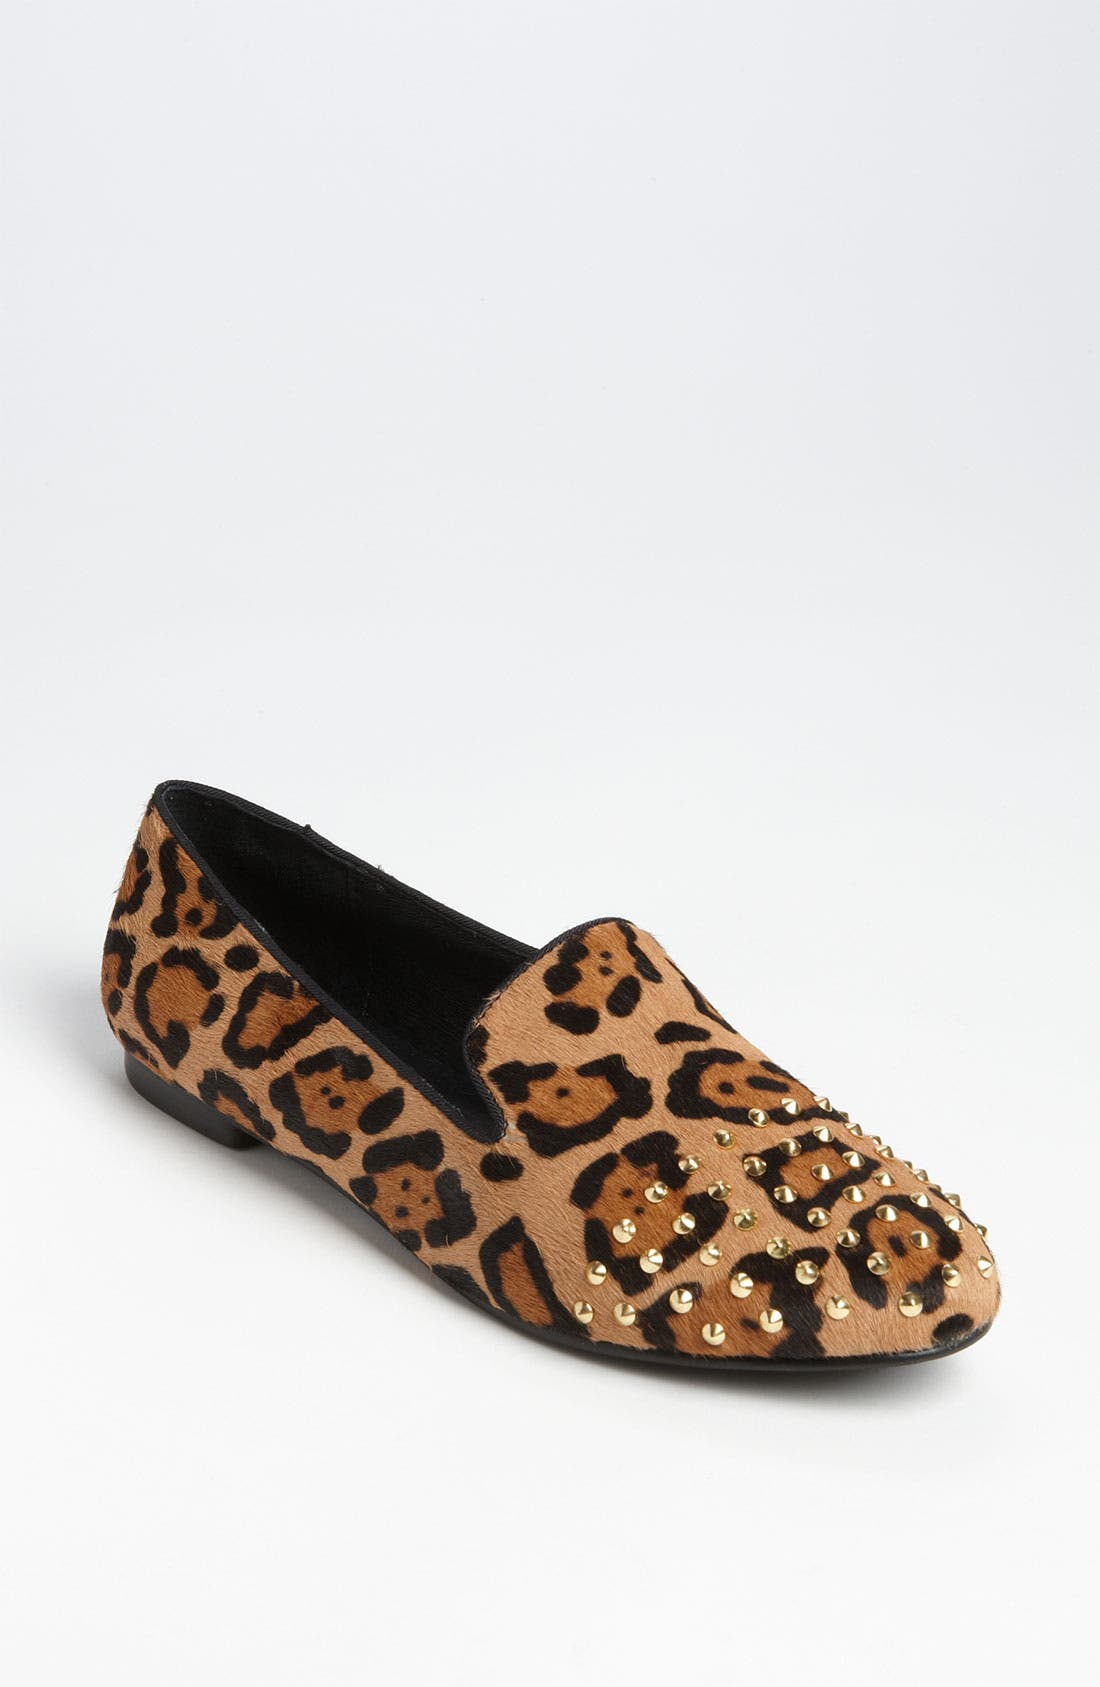 Main Image - Steven by Steve Madden 'Melter' Slip-On